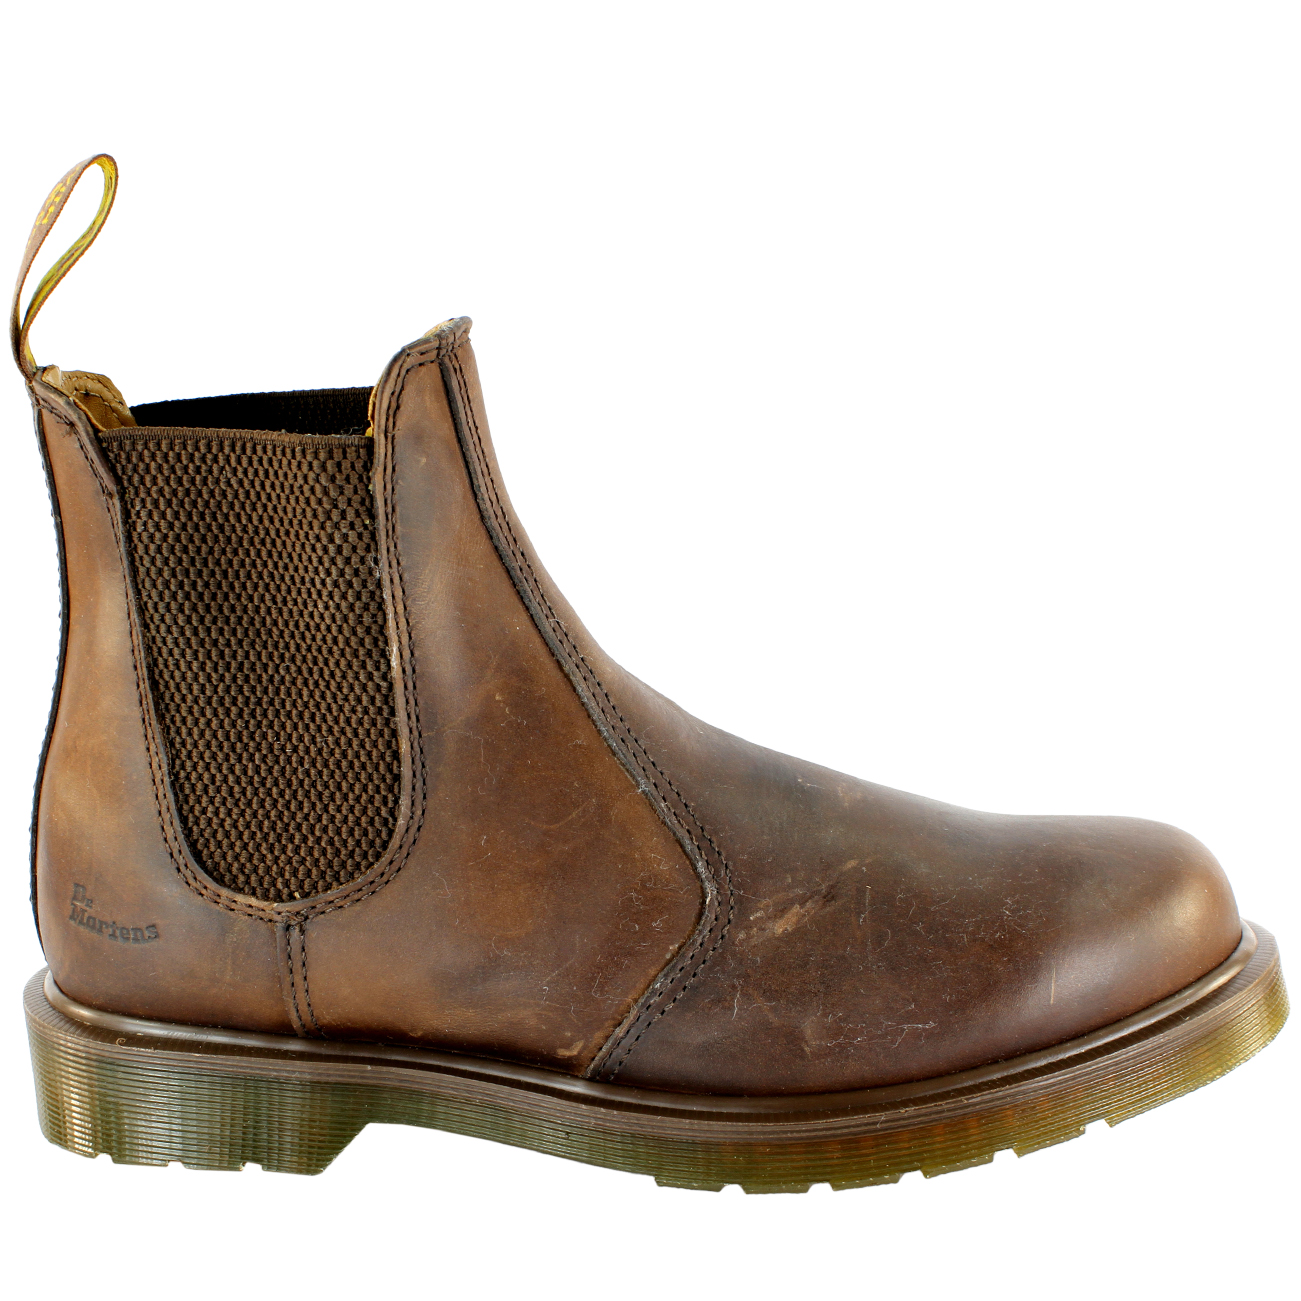 Mens Dr Martens 2976 Classic Chelsea Style Leather Ankle High Boot UK Sizes 7-12